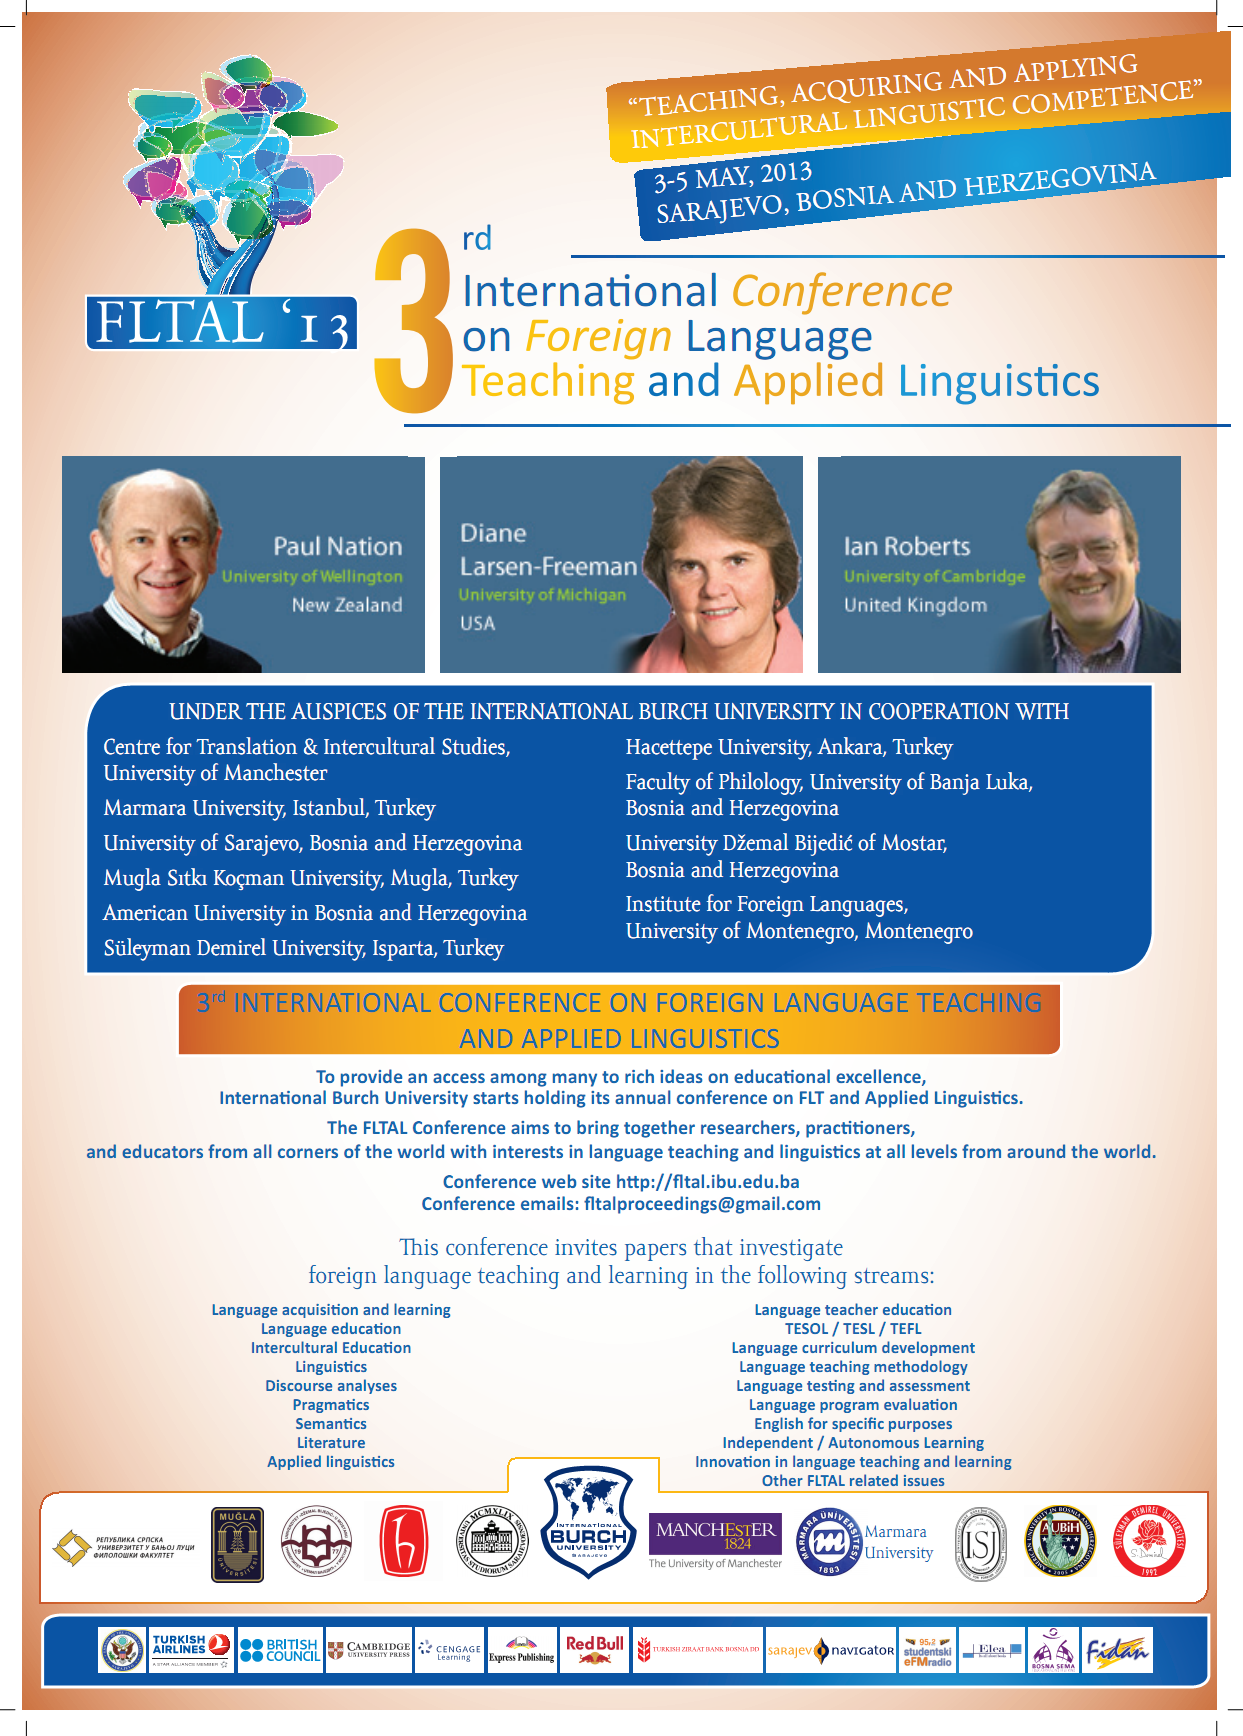 3rd International Conference on Foreign Language Teaching and Applied Linguistics